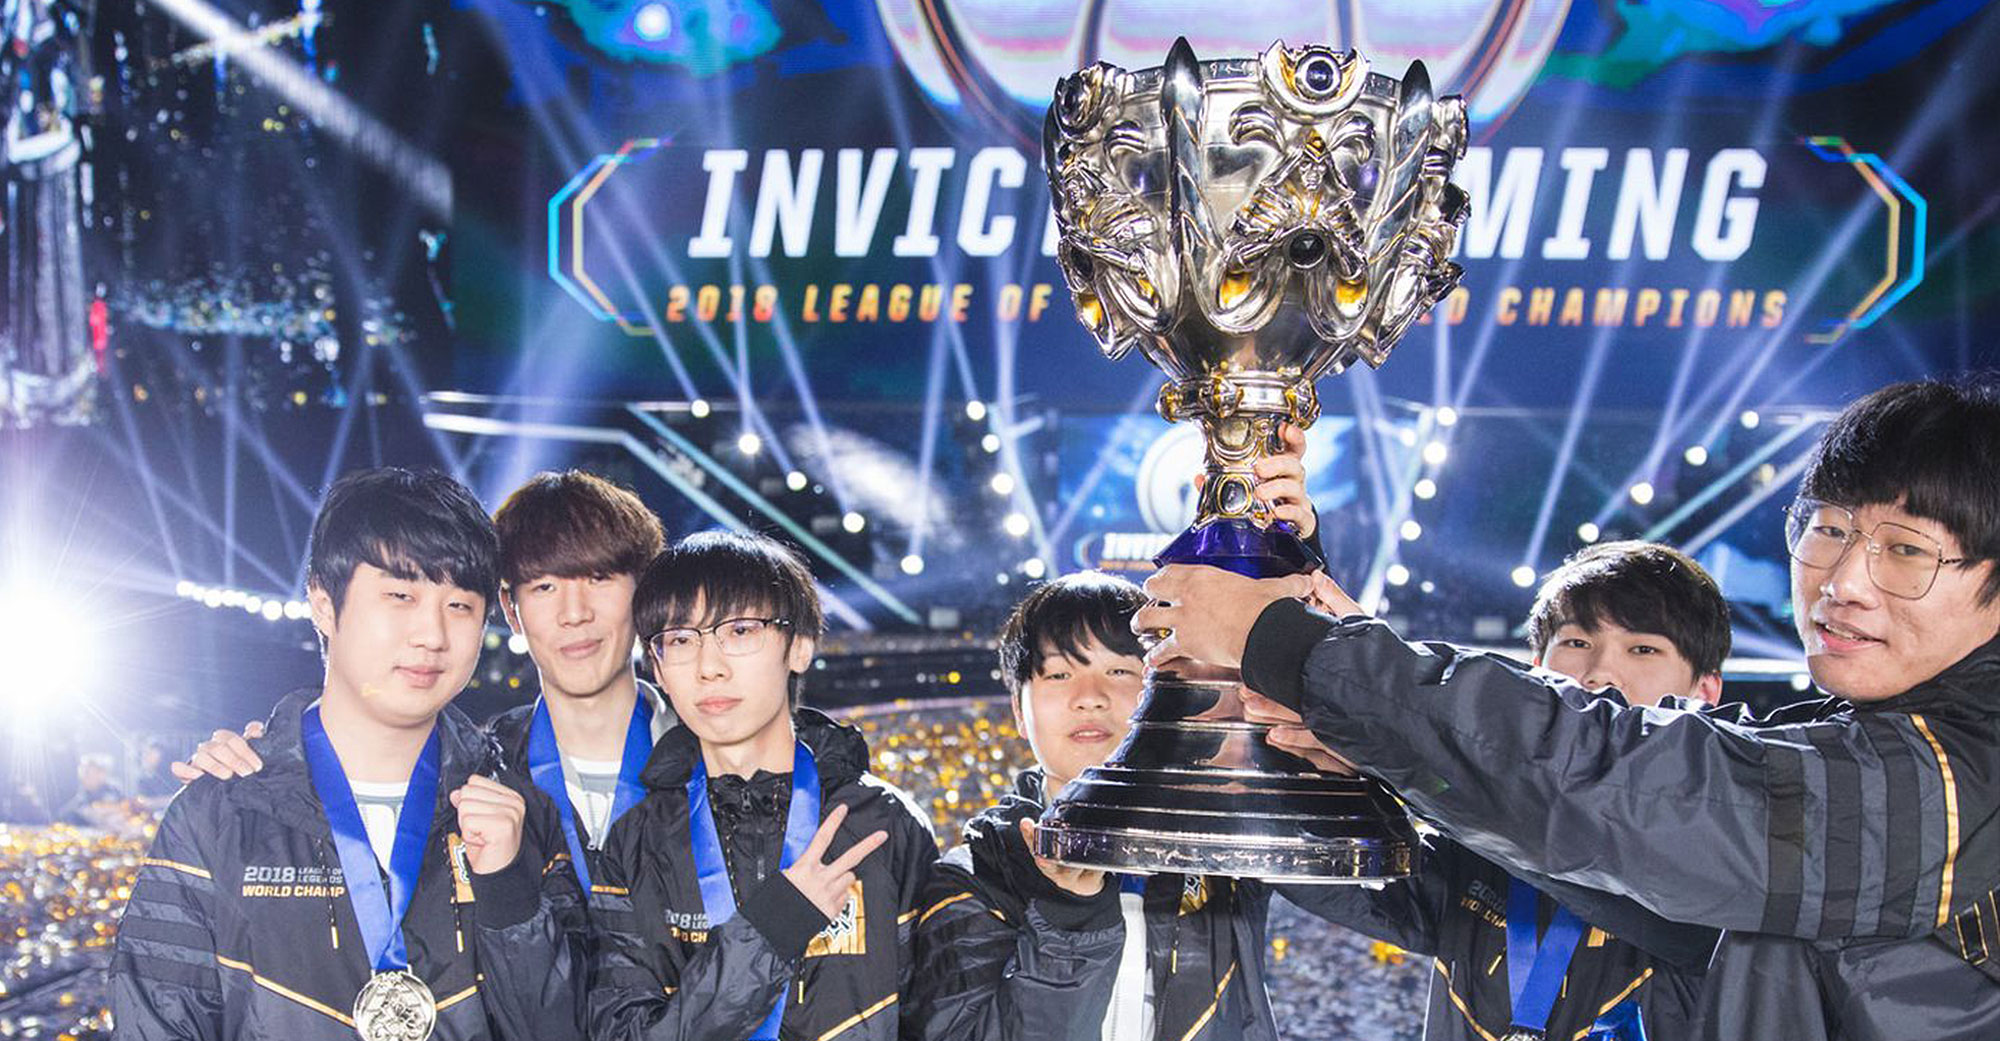 Invictus Gaming beat Fnatic in Worlds 2018 Finals · SickOdds